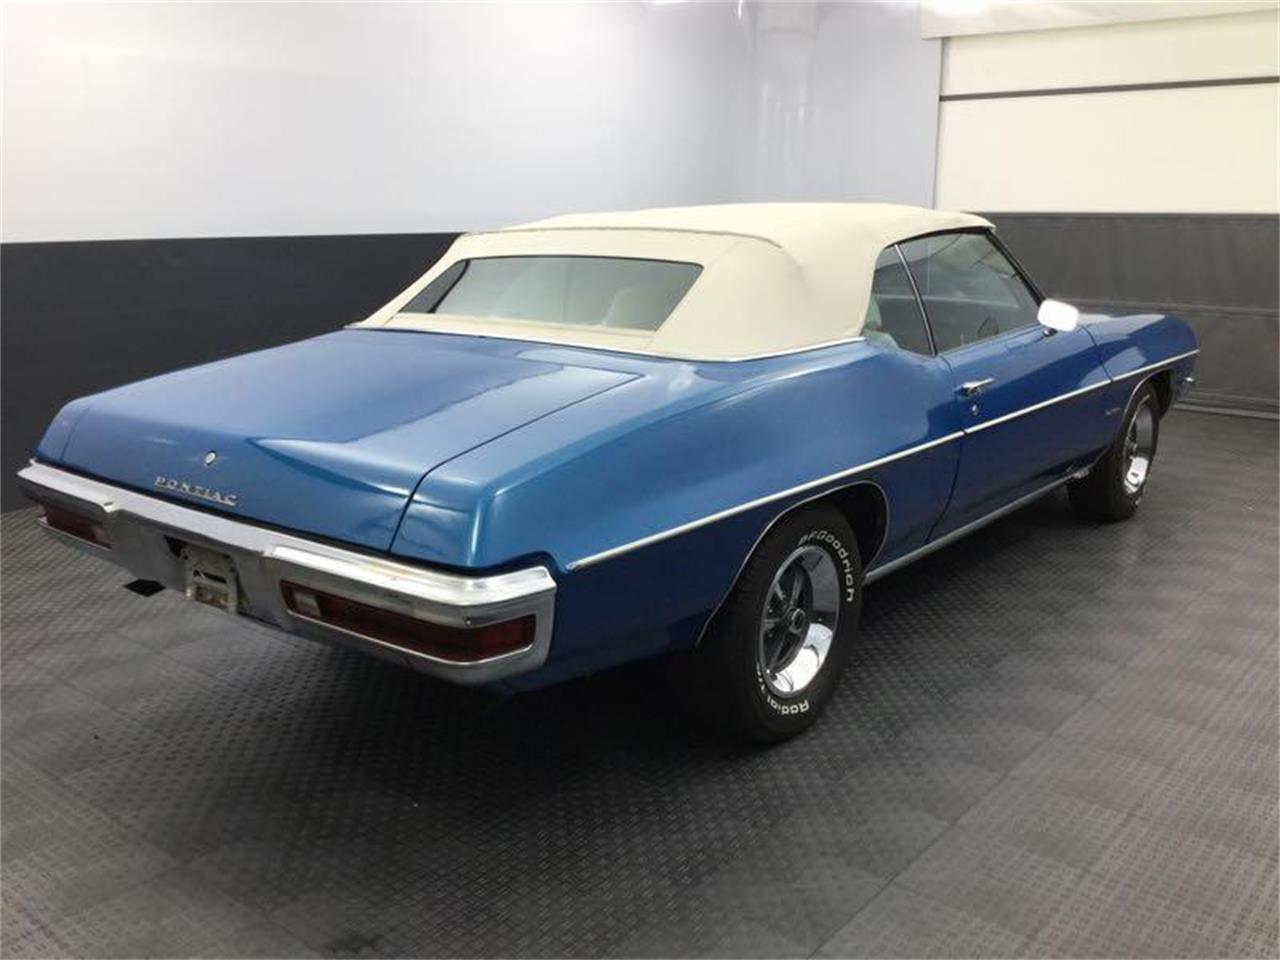 Large Picture of '72 Pontiac LeMans located in Richmond Virginia Auction Vehicle - QWUA